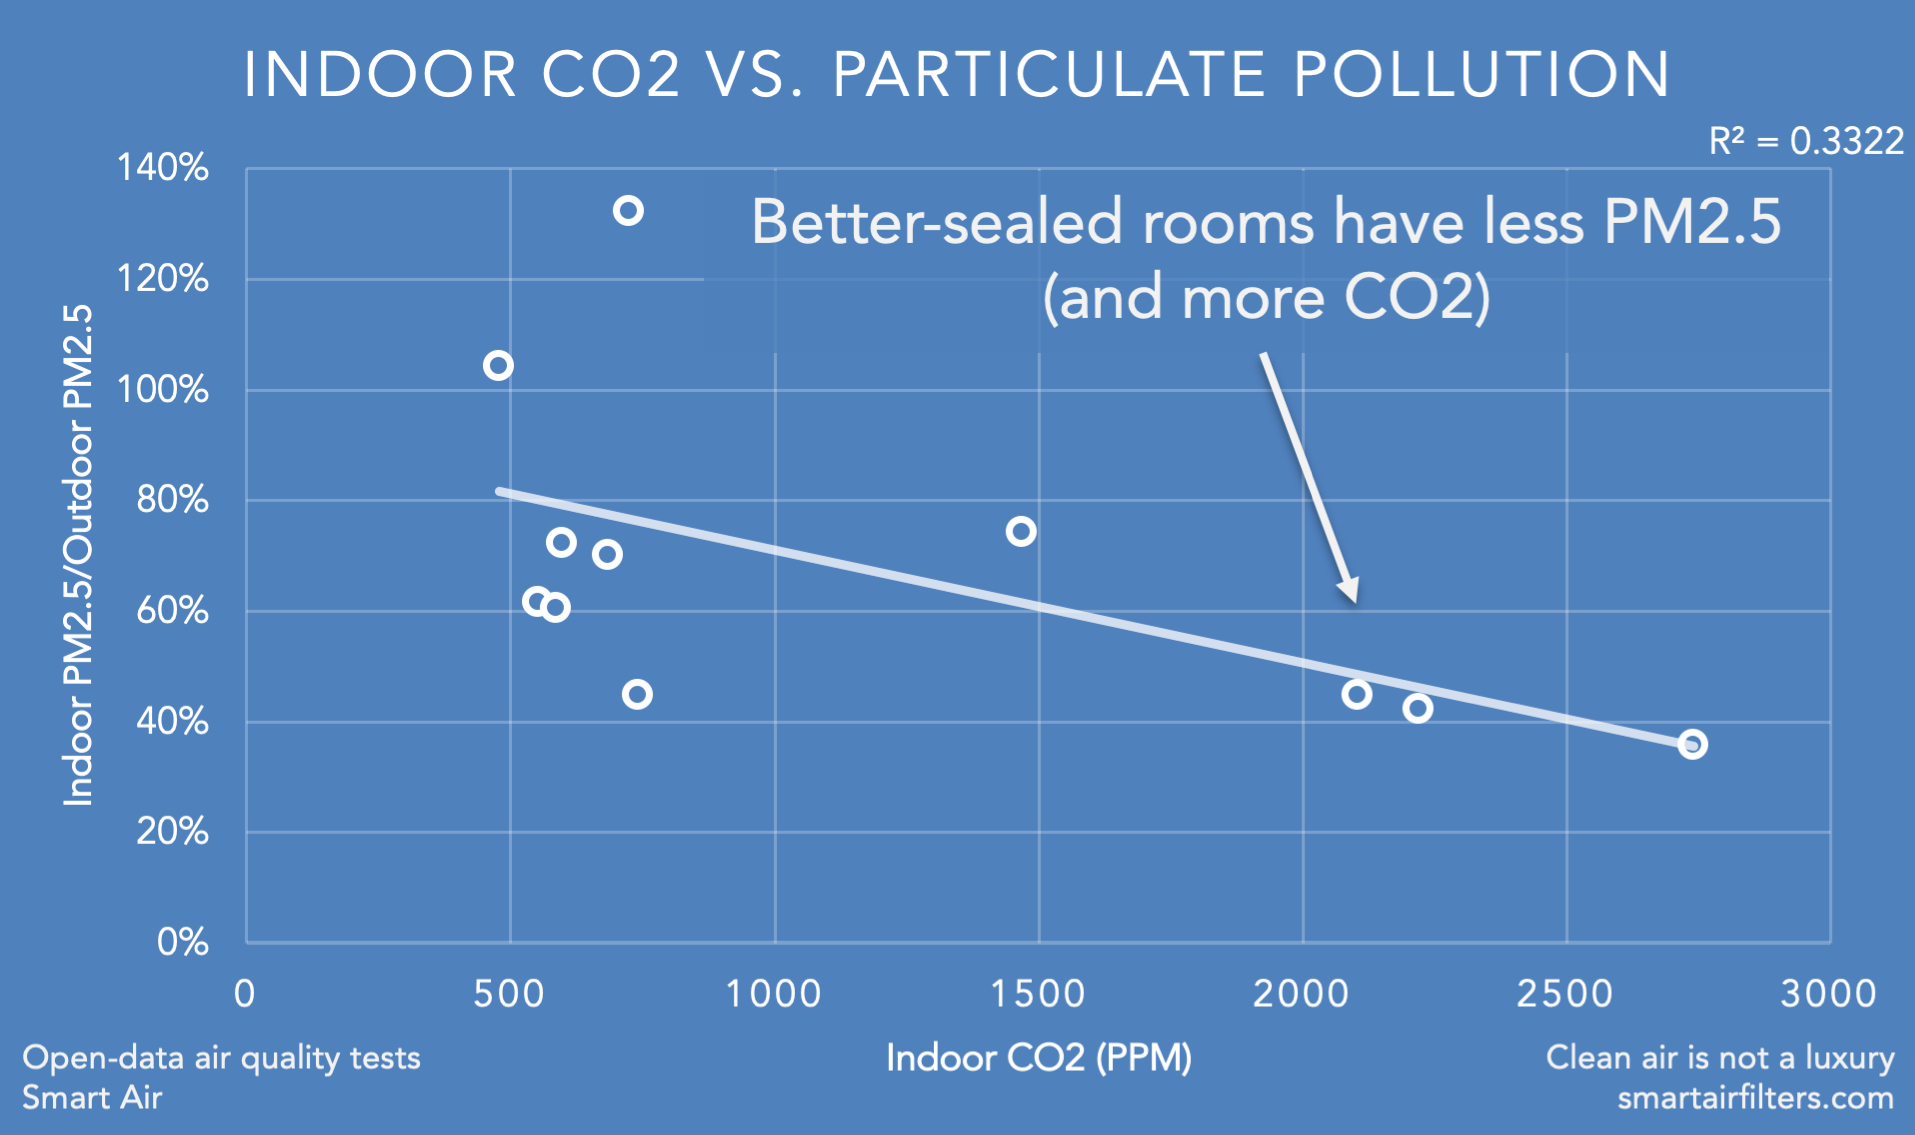 Better-sealed rooms have more CO2 and less PM2.5